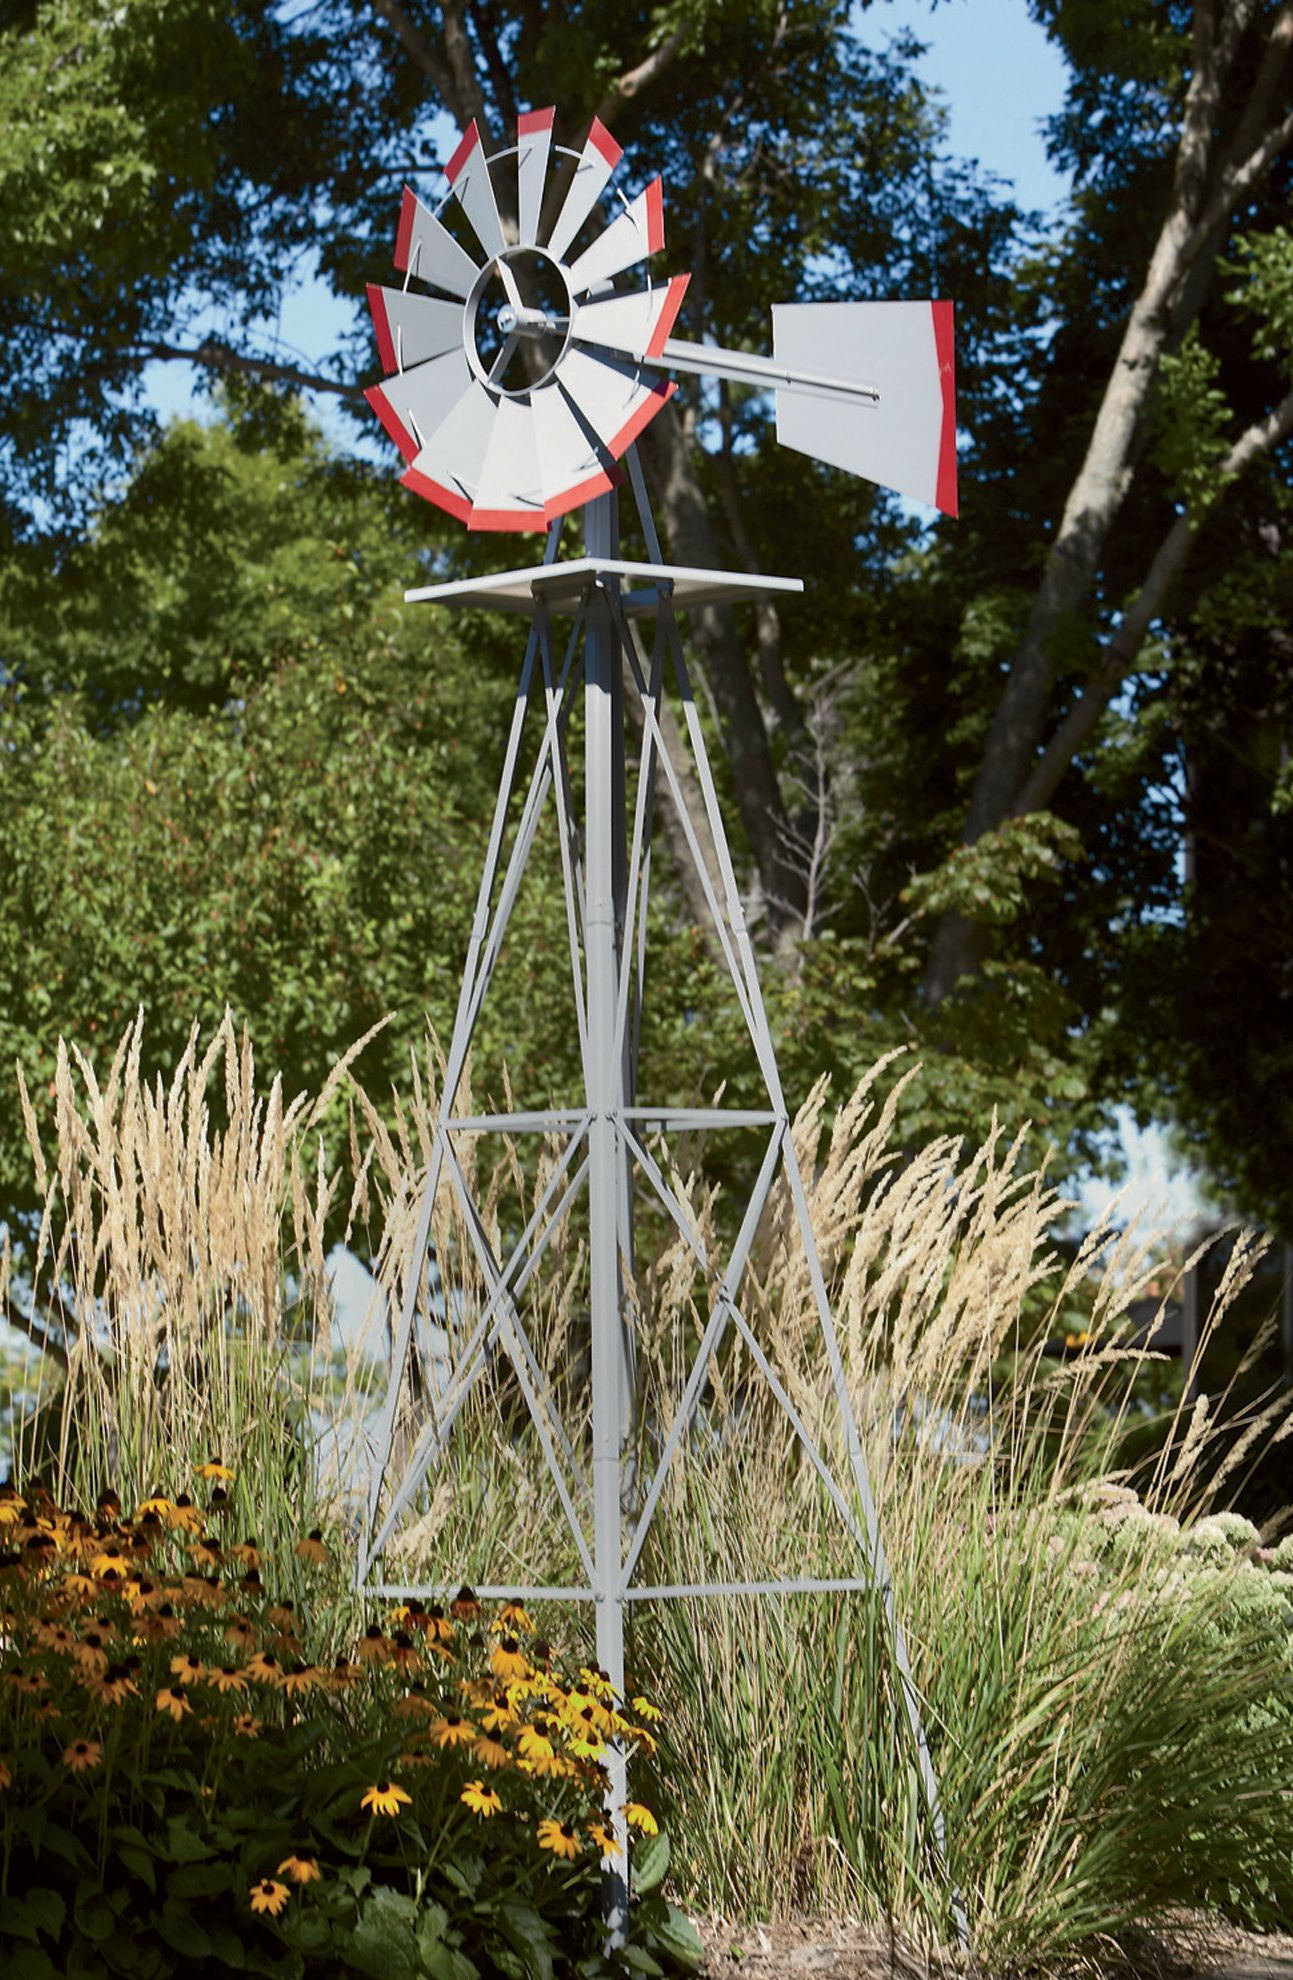 Merveilleux Add A Rustic Touch To Your Yard With A 8 Ft. Tall Ornamental Windmill!